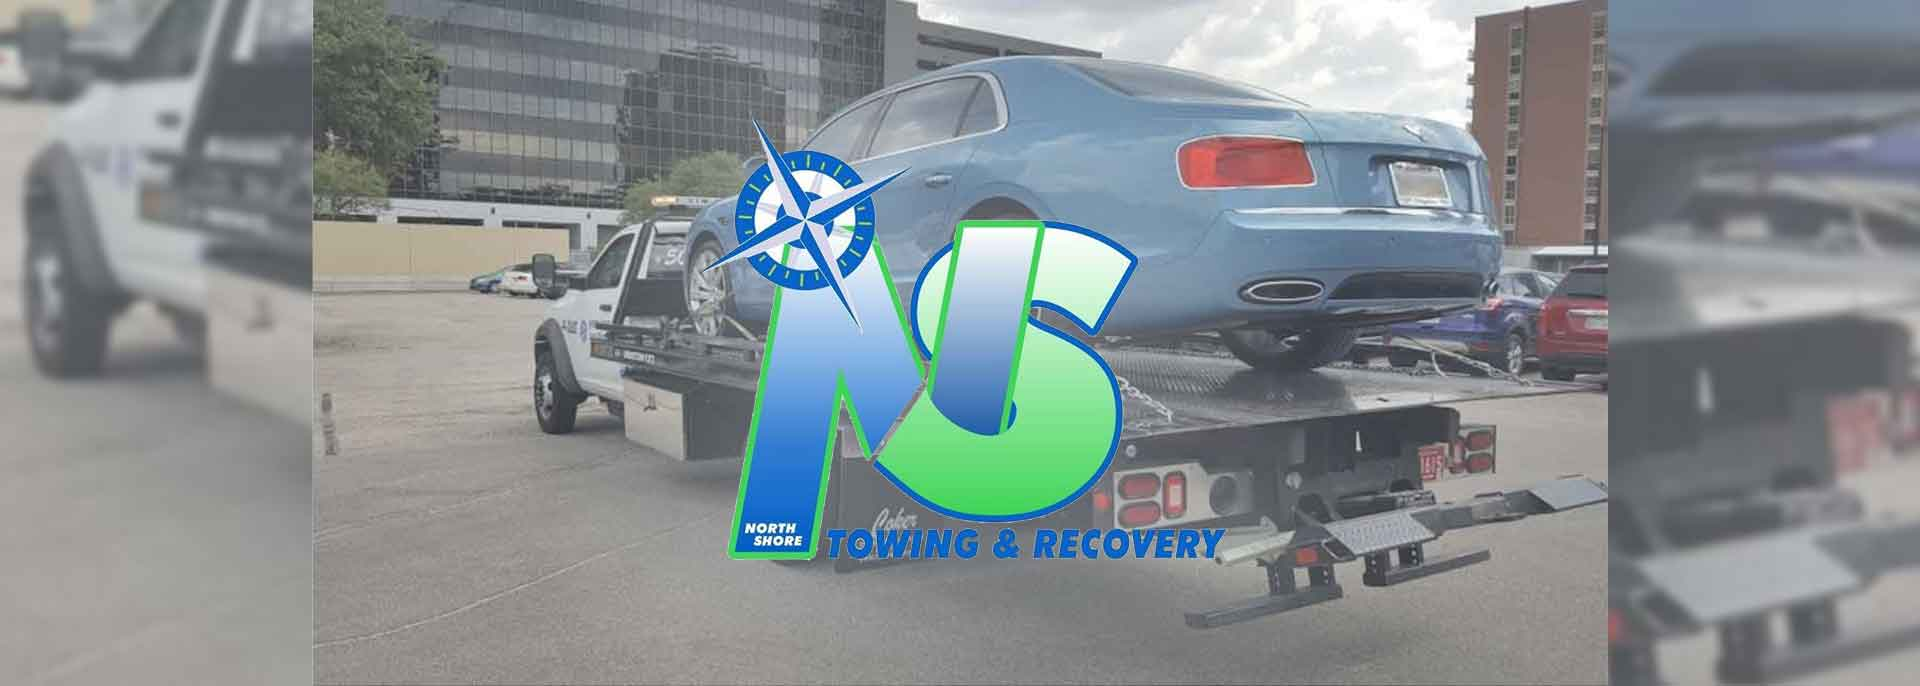 NS Towing & Recovery 2029 N Broad St, New Orleans